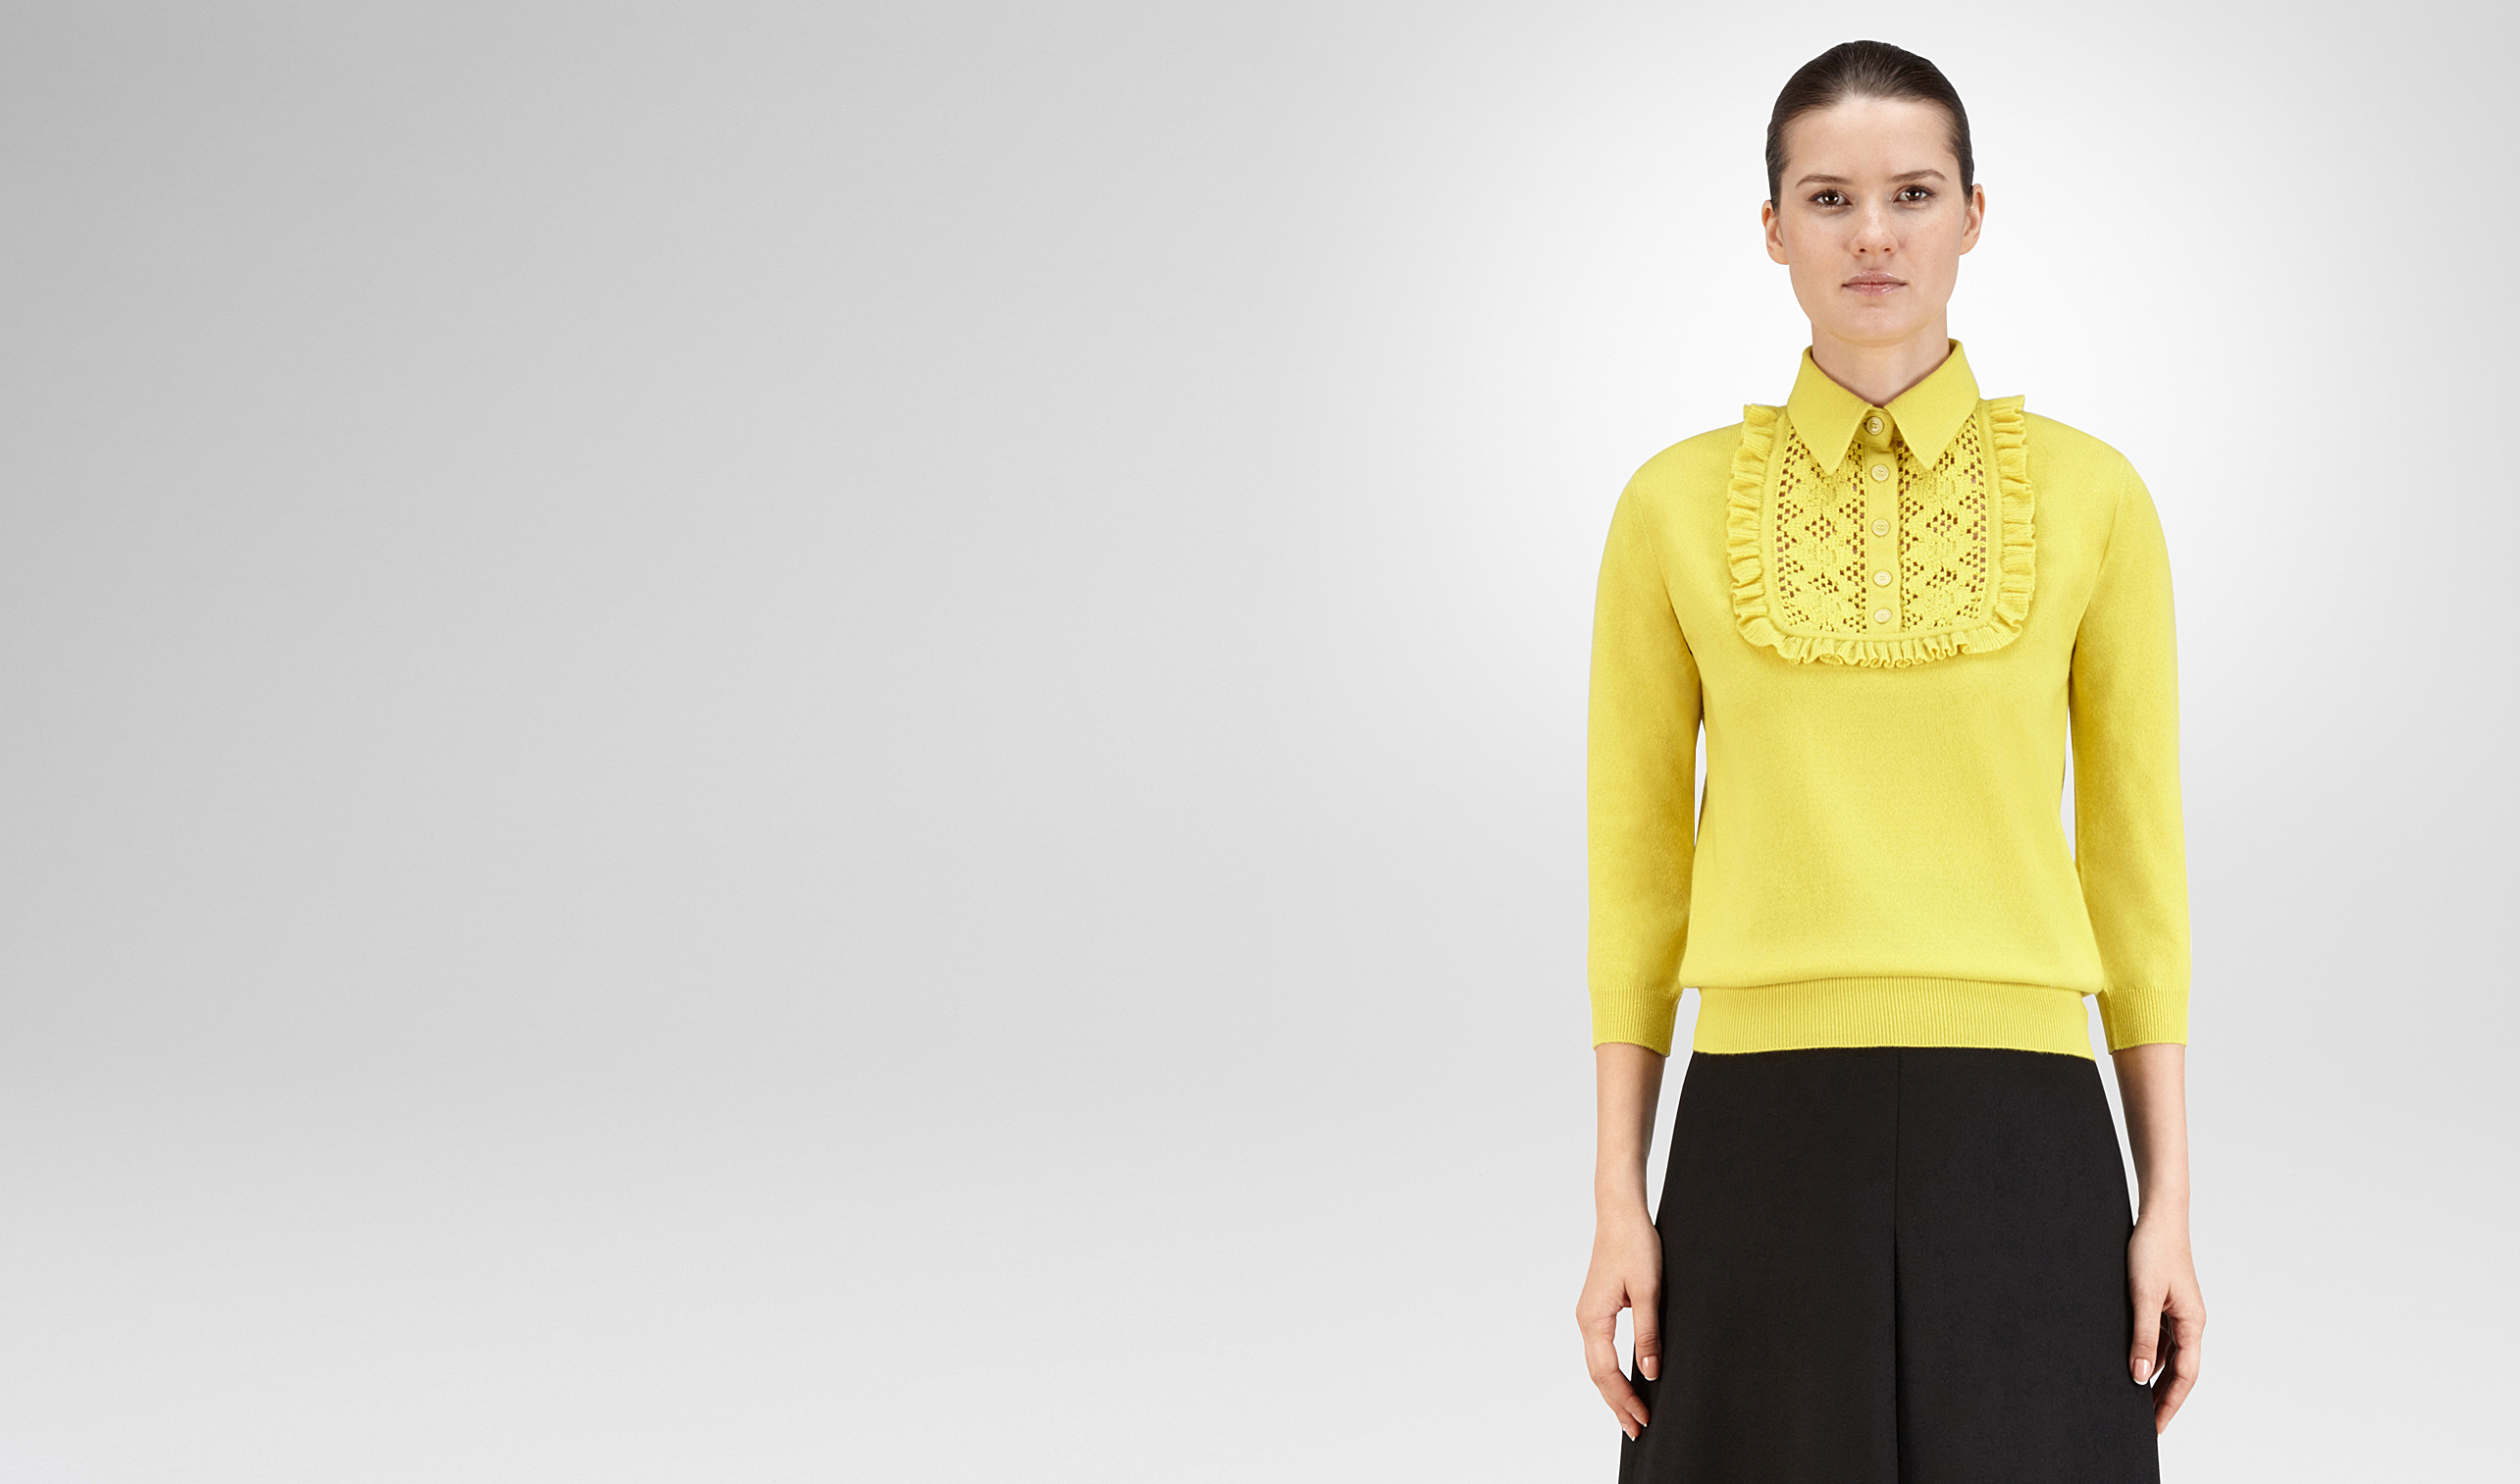 BOTTEGA VENETA Knitwear or Top or Shirt D SWEATER IN CITRINE CASHMERE, RUFFLE DETAILS pl